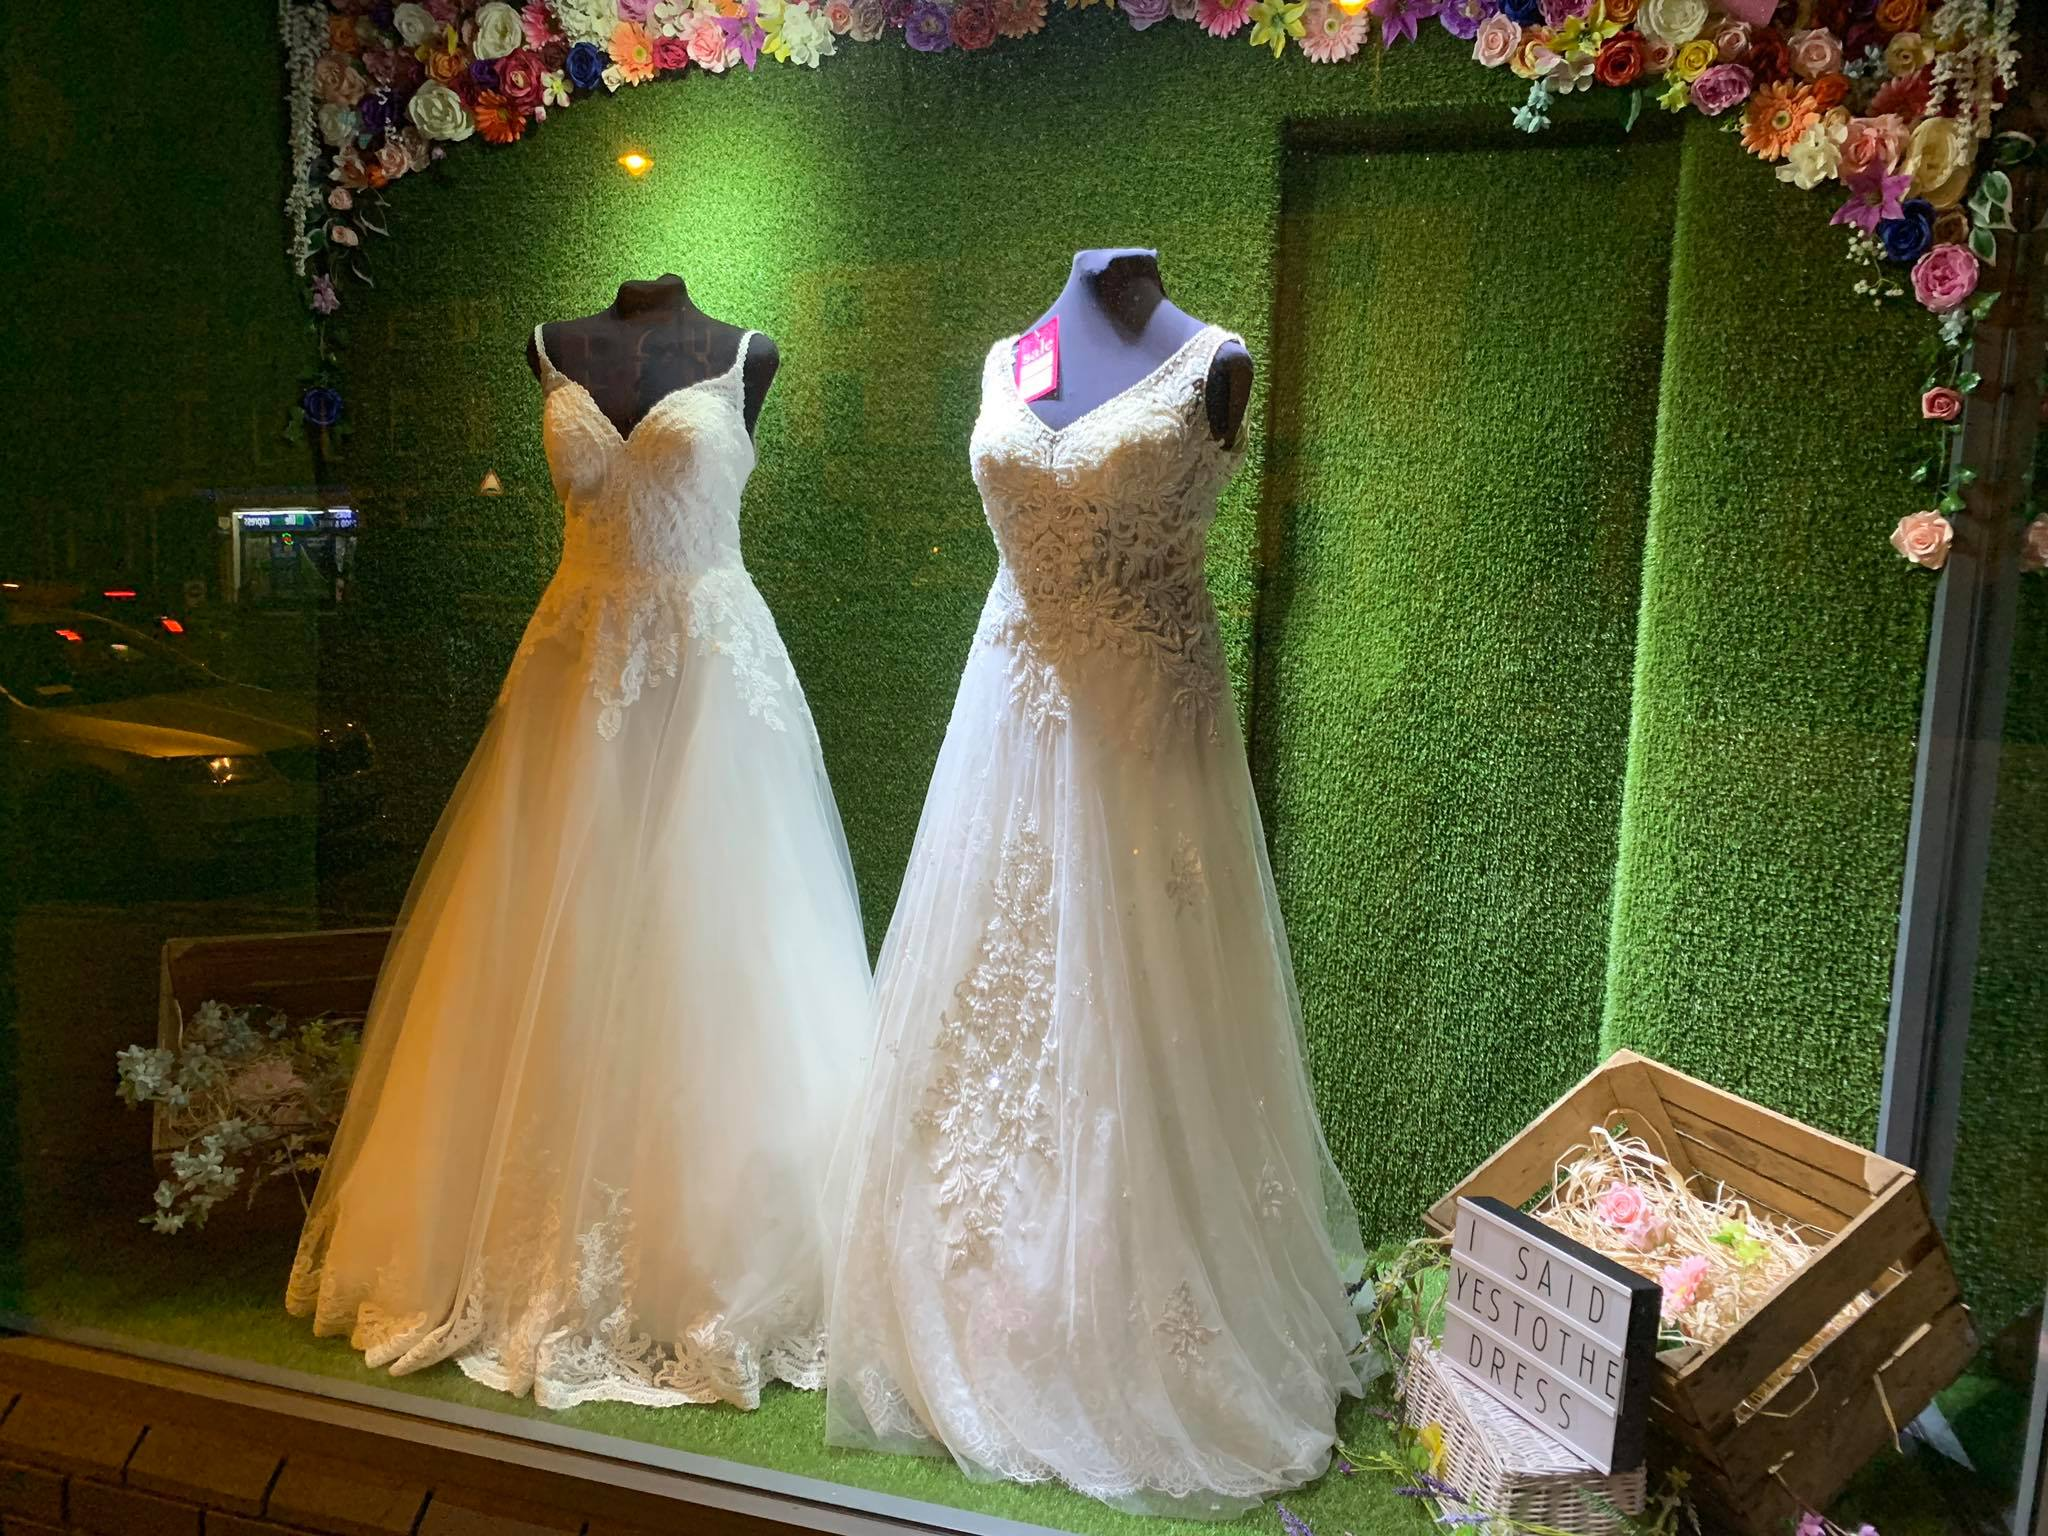 Wedding dress sale window display